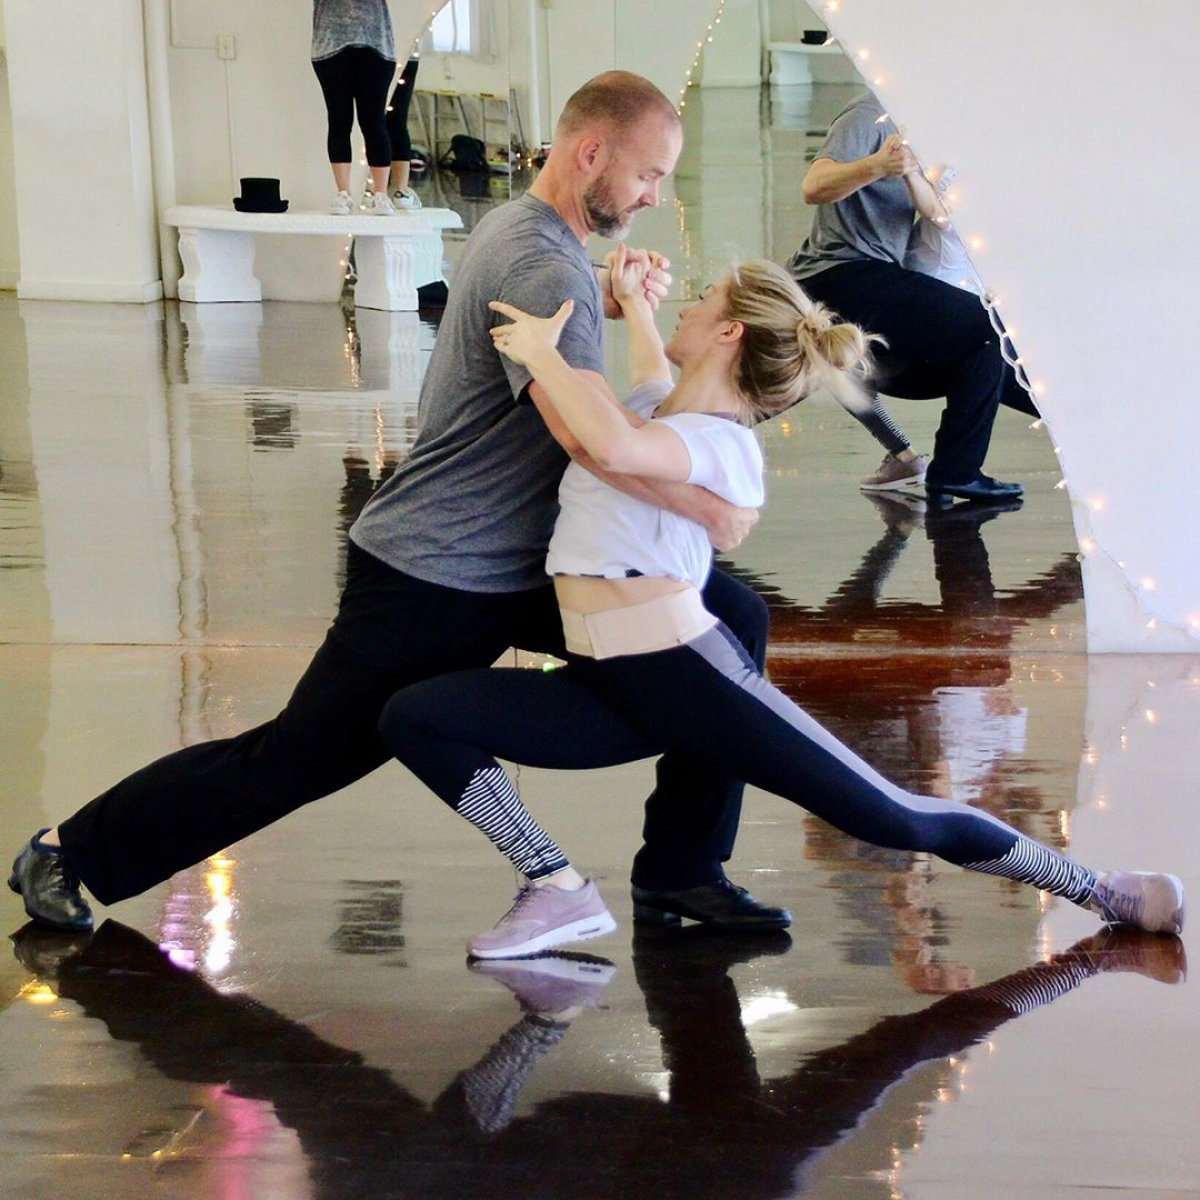 Story Dancing With The Stars Kym Johnson And Robert Herjavec Welcome Twins: David Ross -- 9 Things To Know About The 'Dancing With The